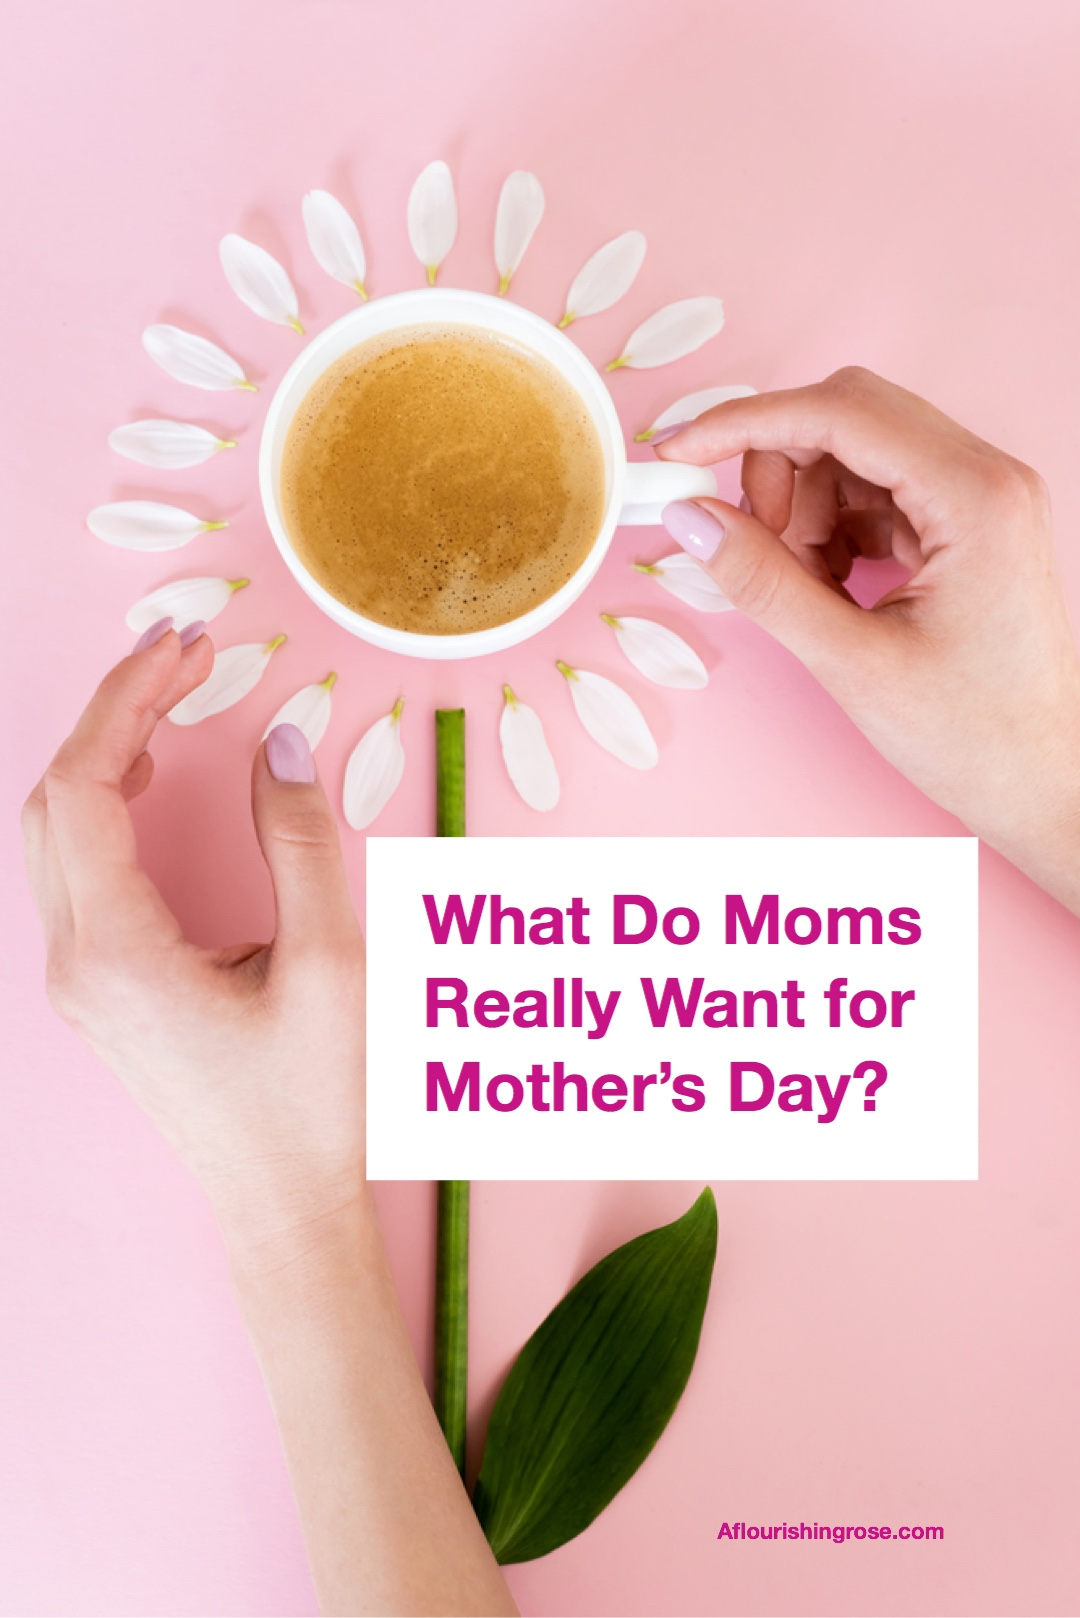 What Moms are really asking for this Mother's Day